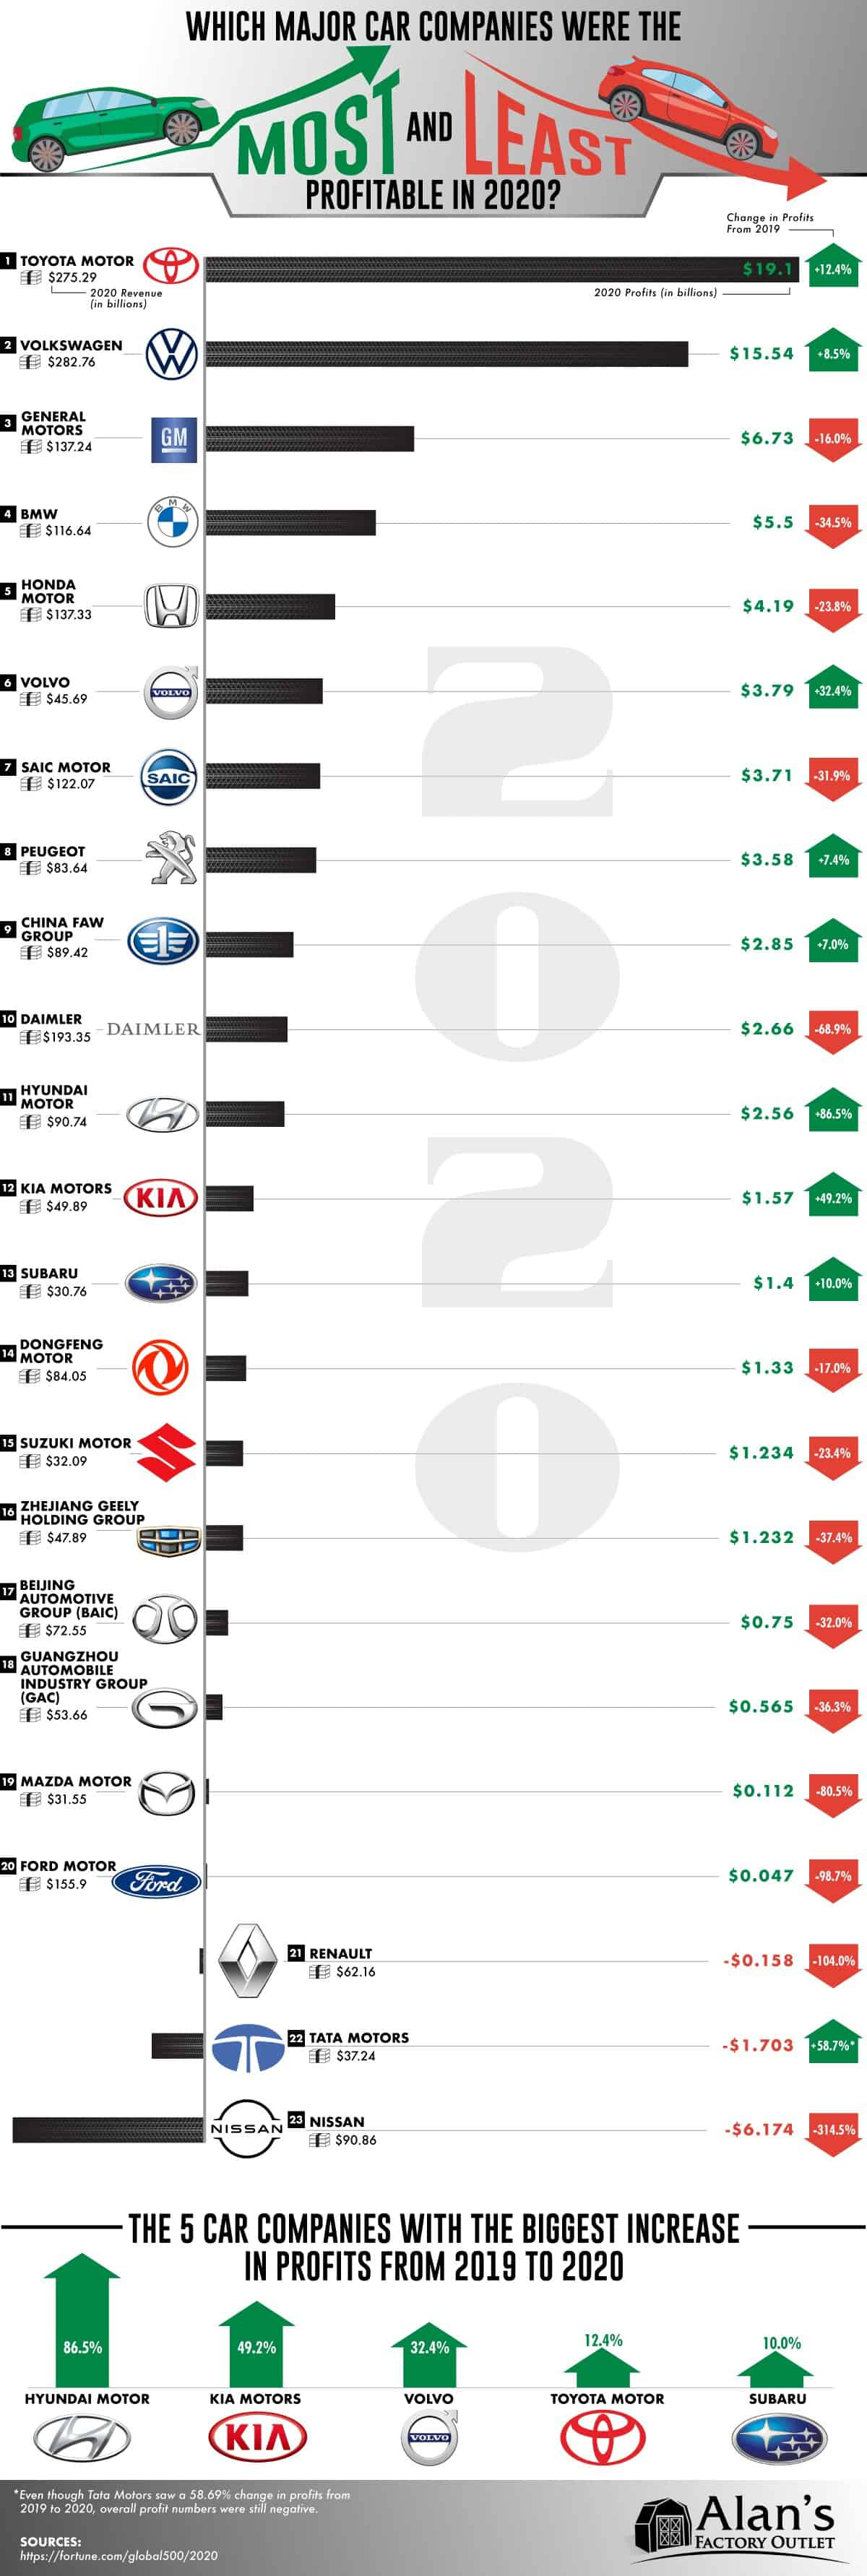 Which Car Manufacturers Were the Most and Least Profitable in 2020